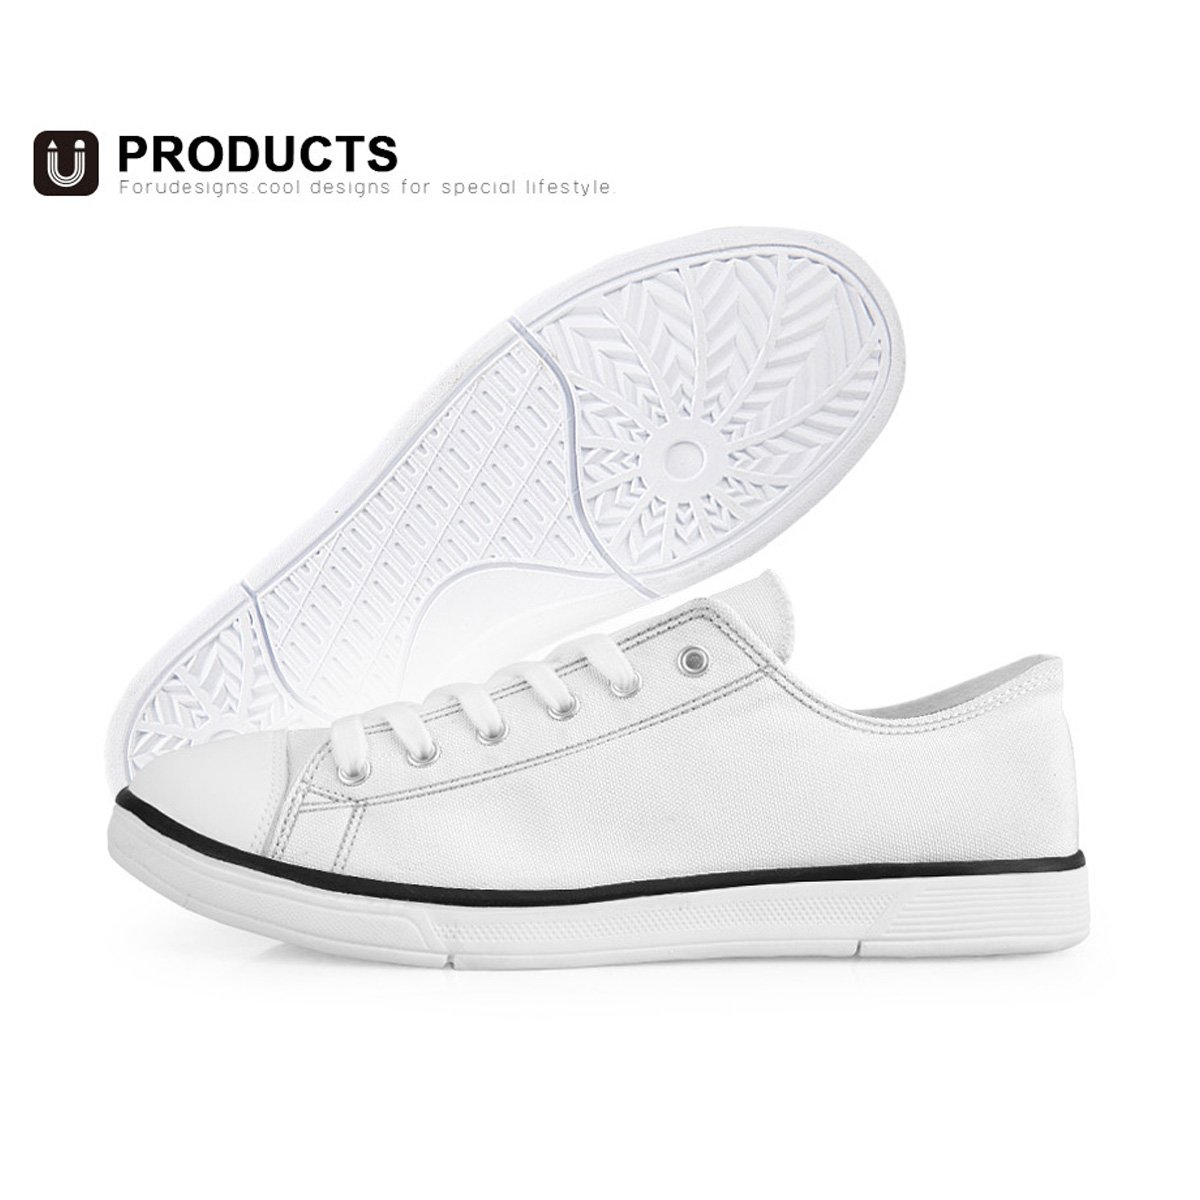 Freewander Comfortable Rubber Sole Sneaker Low Top Shoes